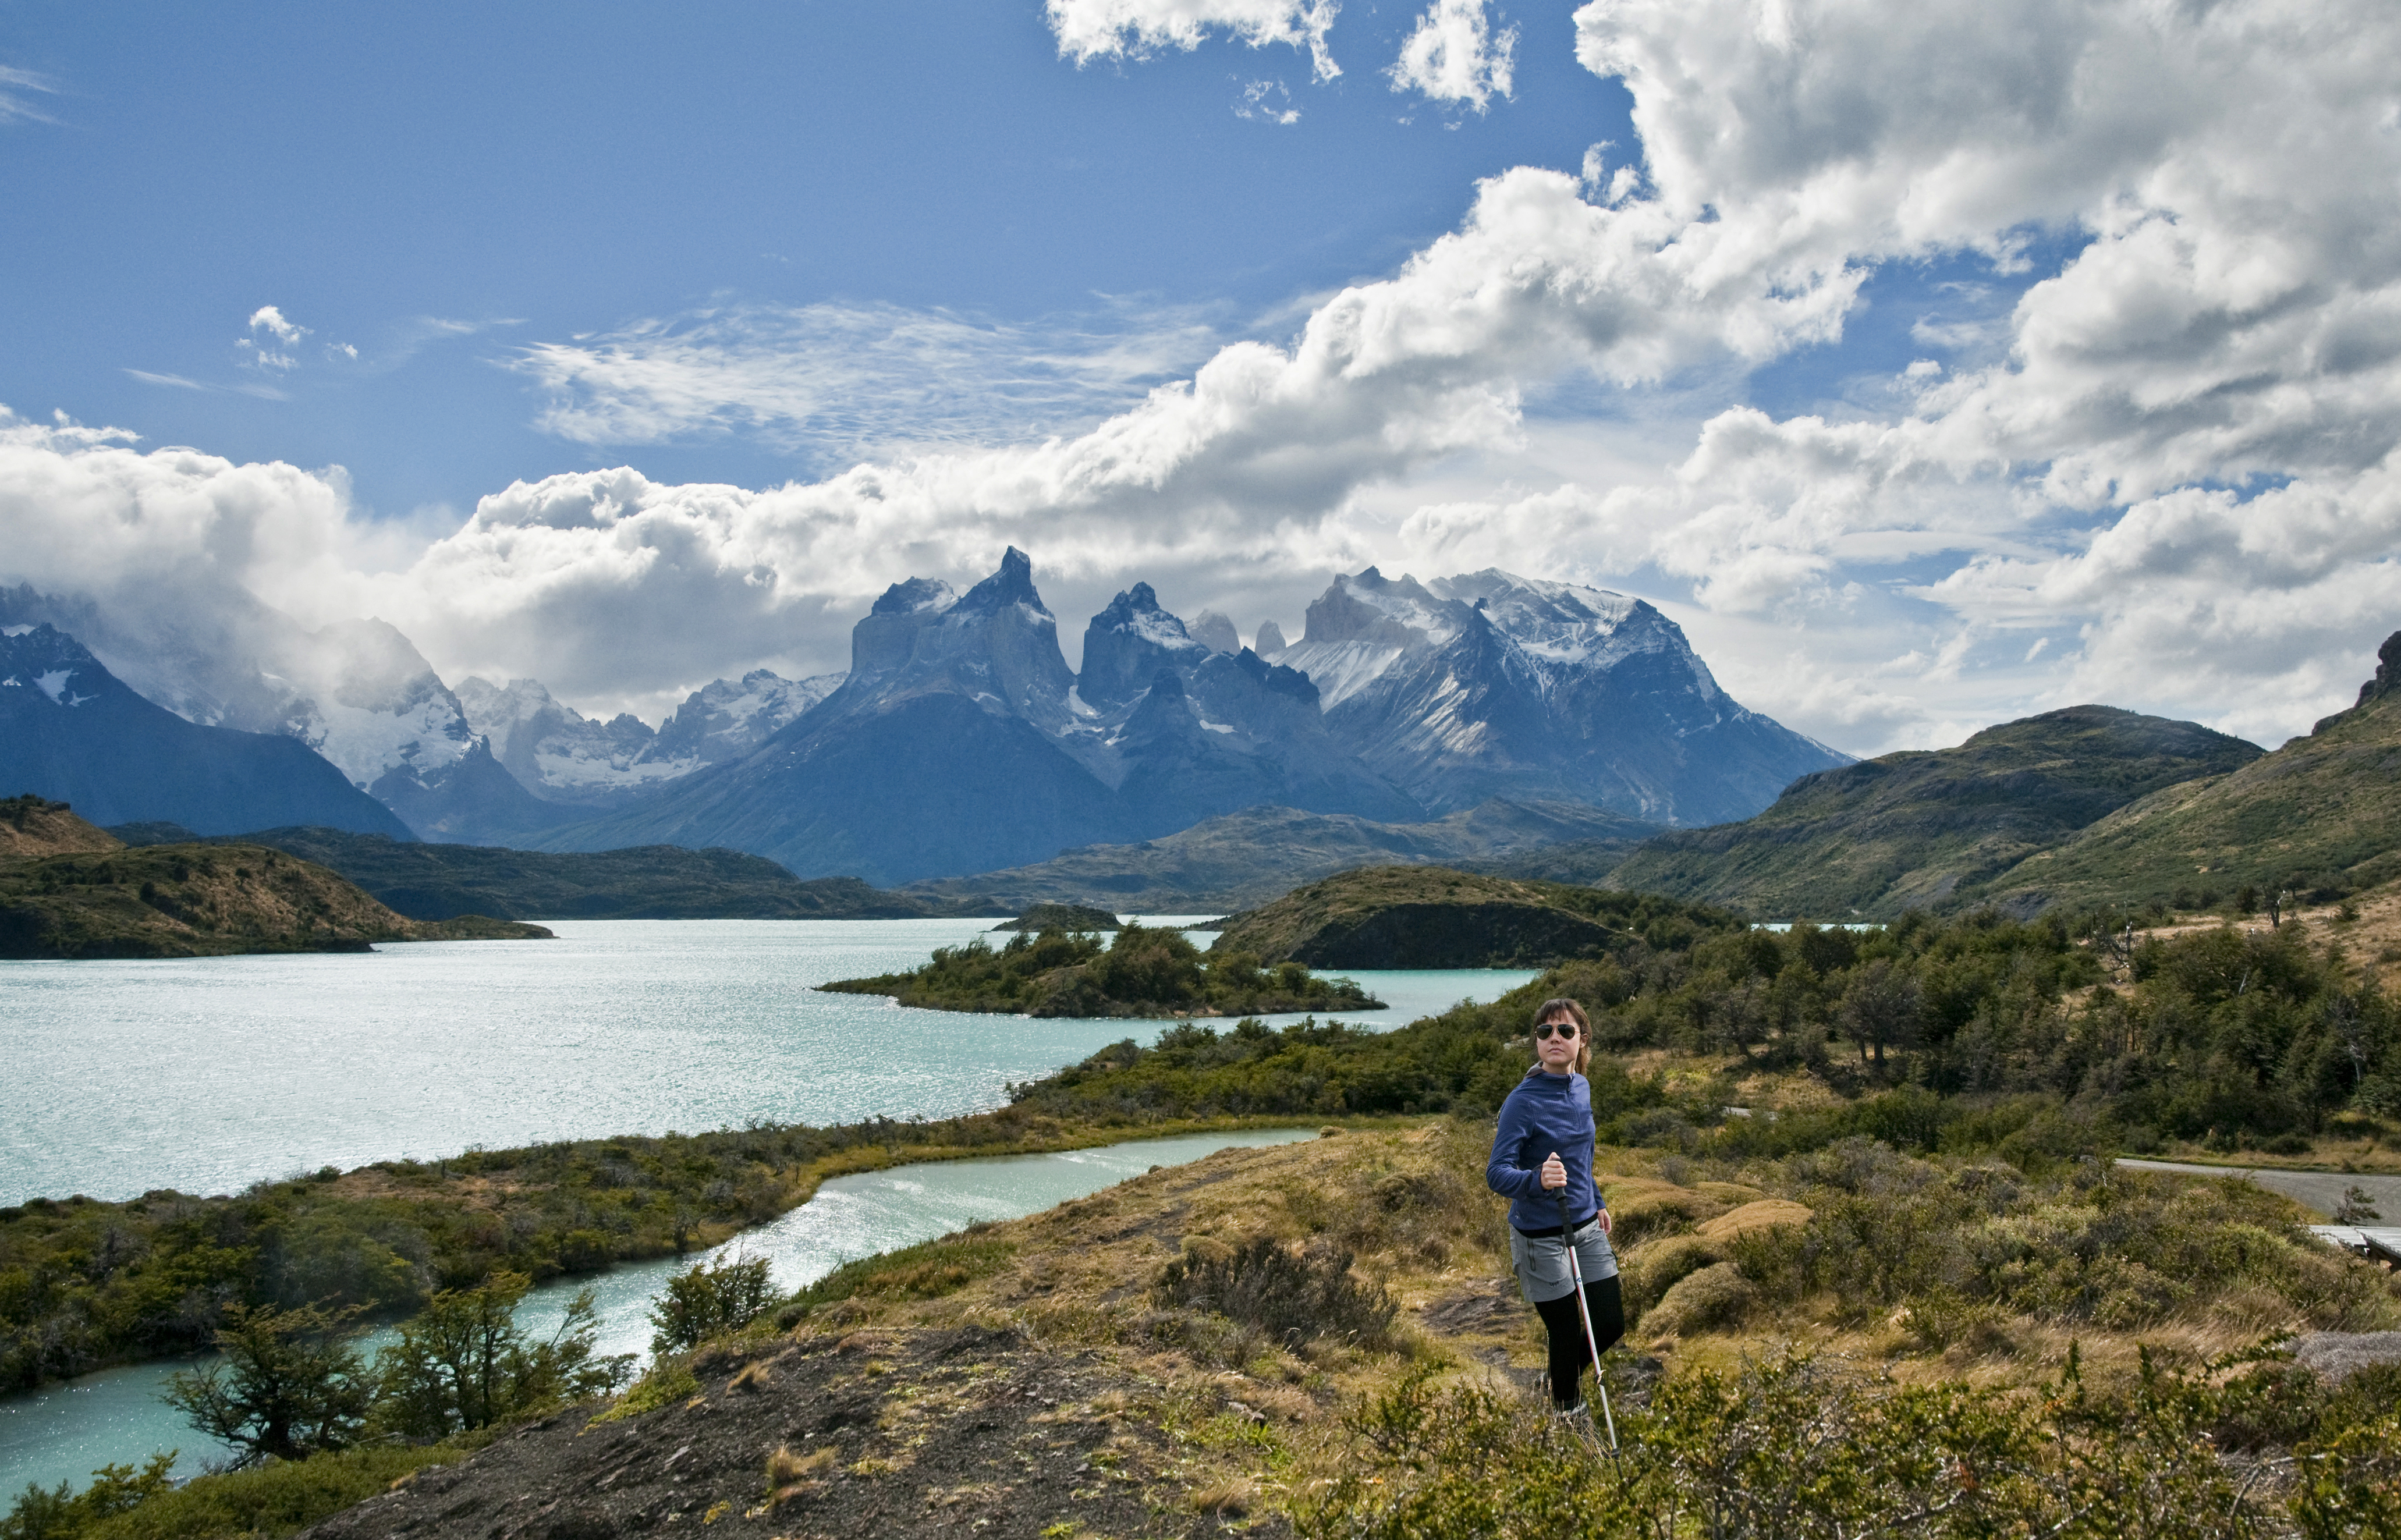 Hiking in Patagonia, Chile